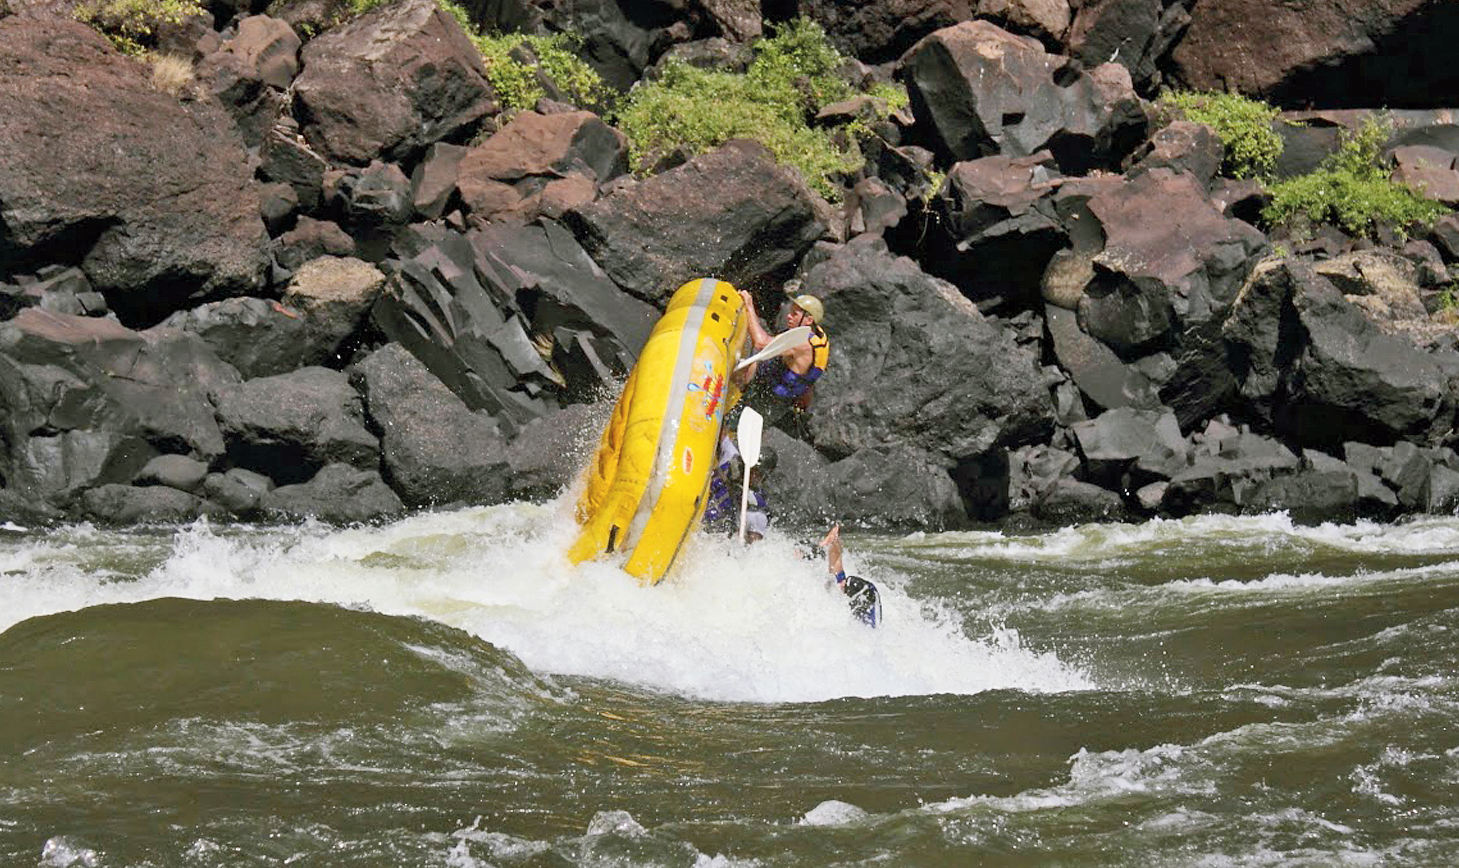 Pal's raft topples over in the Zambezi river. The picture was taken from another raft